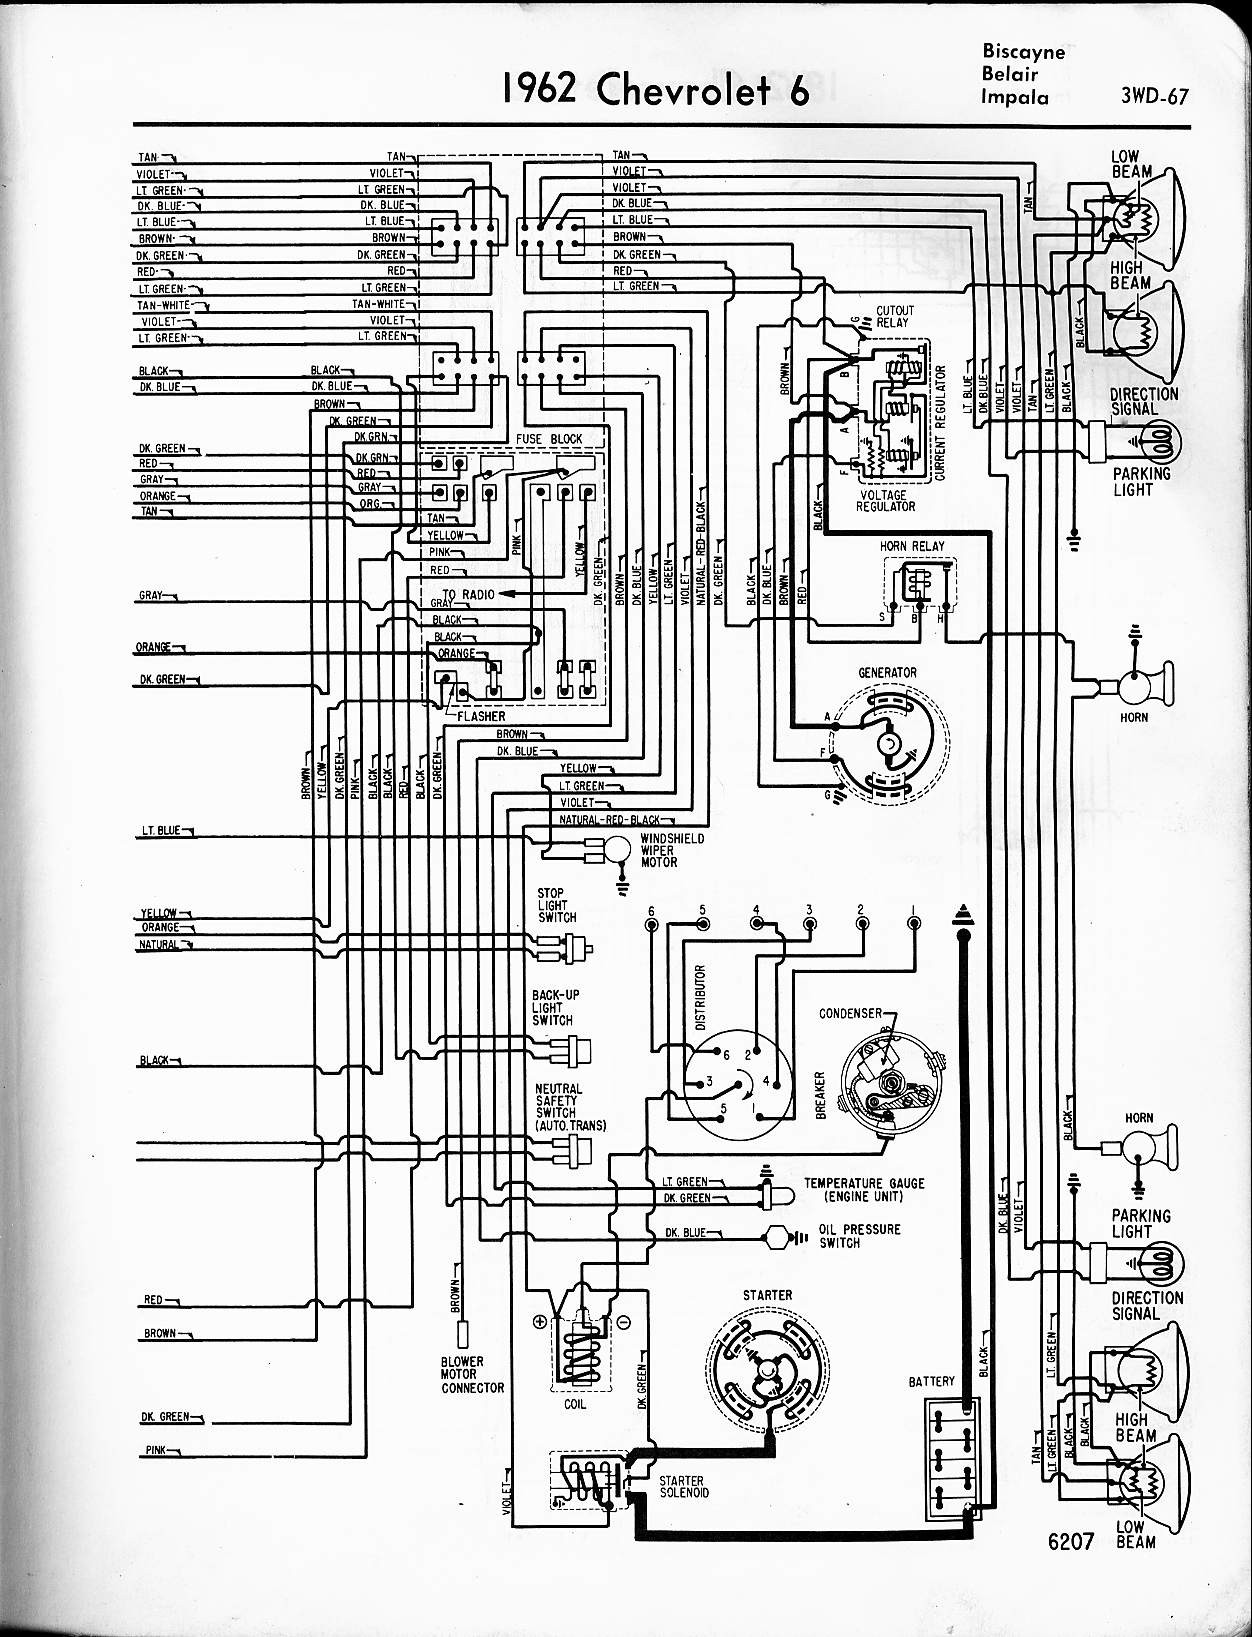 images of 1967 chevy c10 6 cylinder wiring diagram auto electrical rh focusnews co 1967 chevy impala wiring diagram 1967 chevy impala wiring diagram